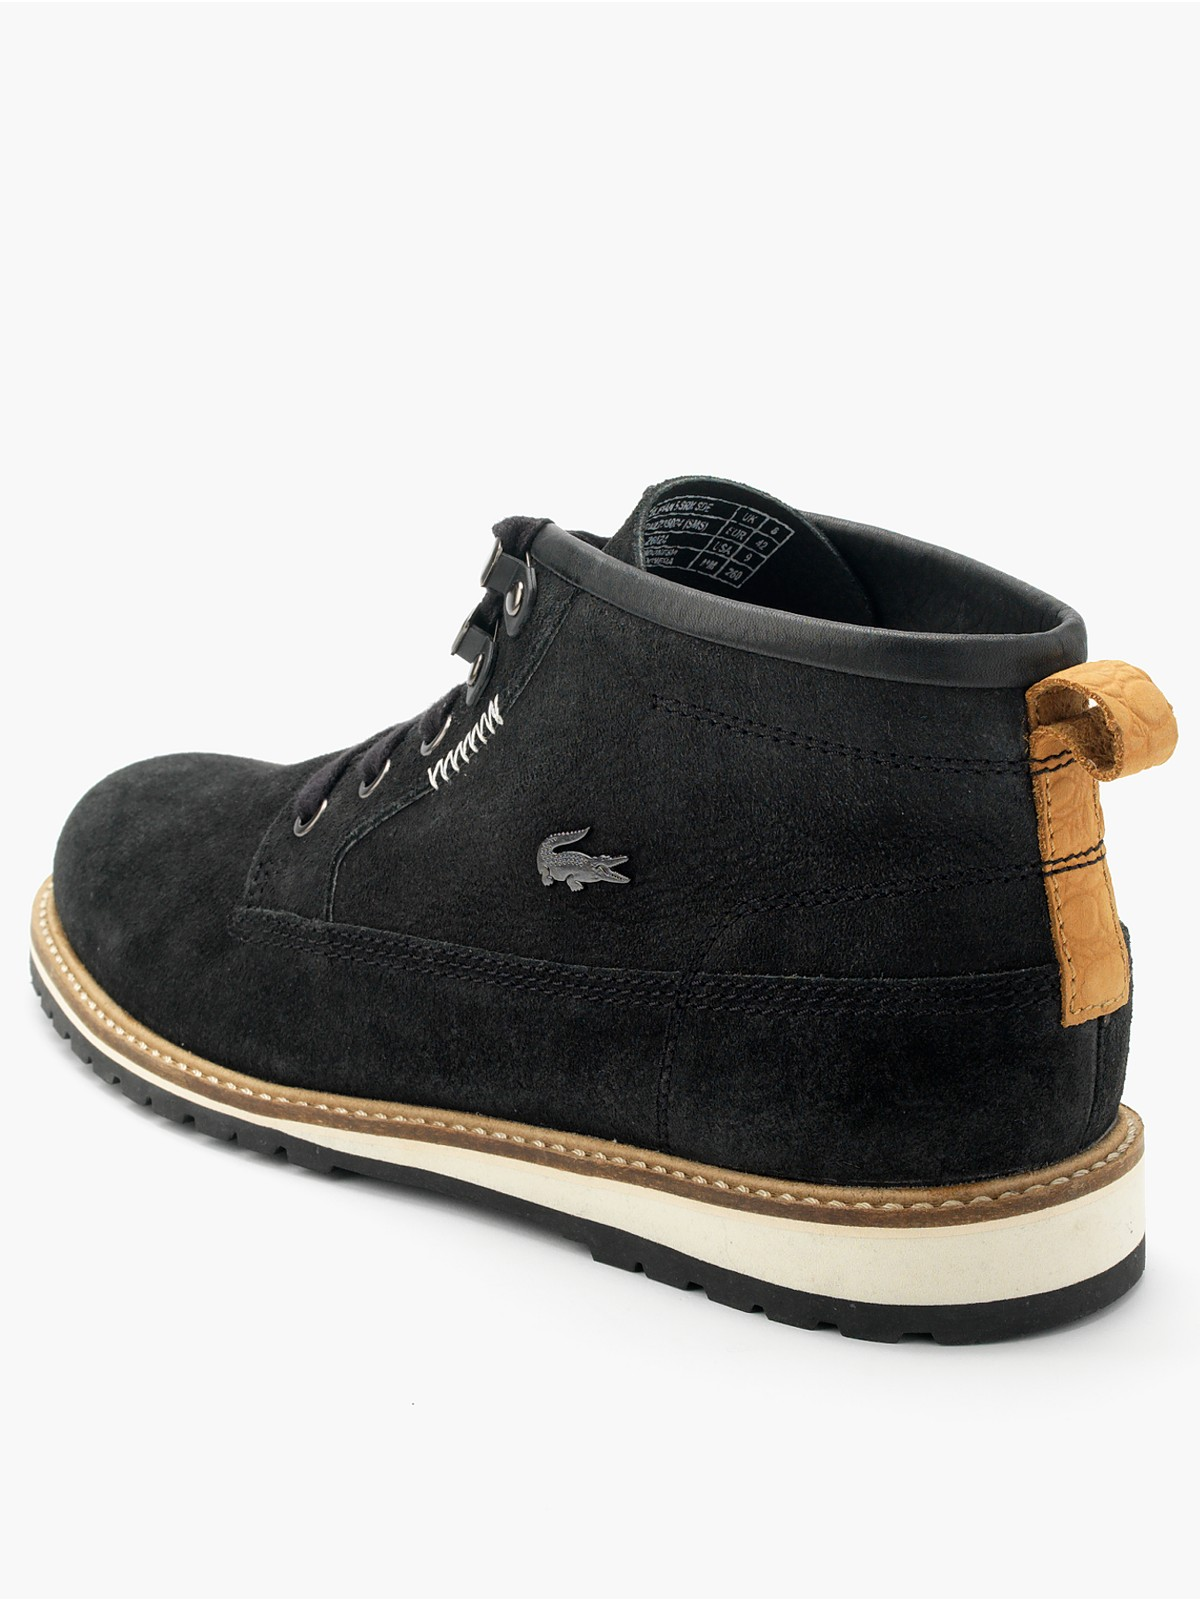 Gallery For gt Lacoste Mens Shoes Boots